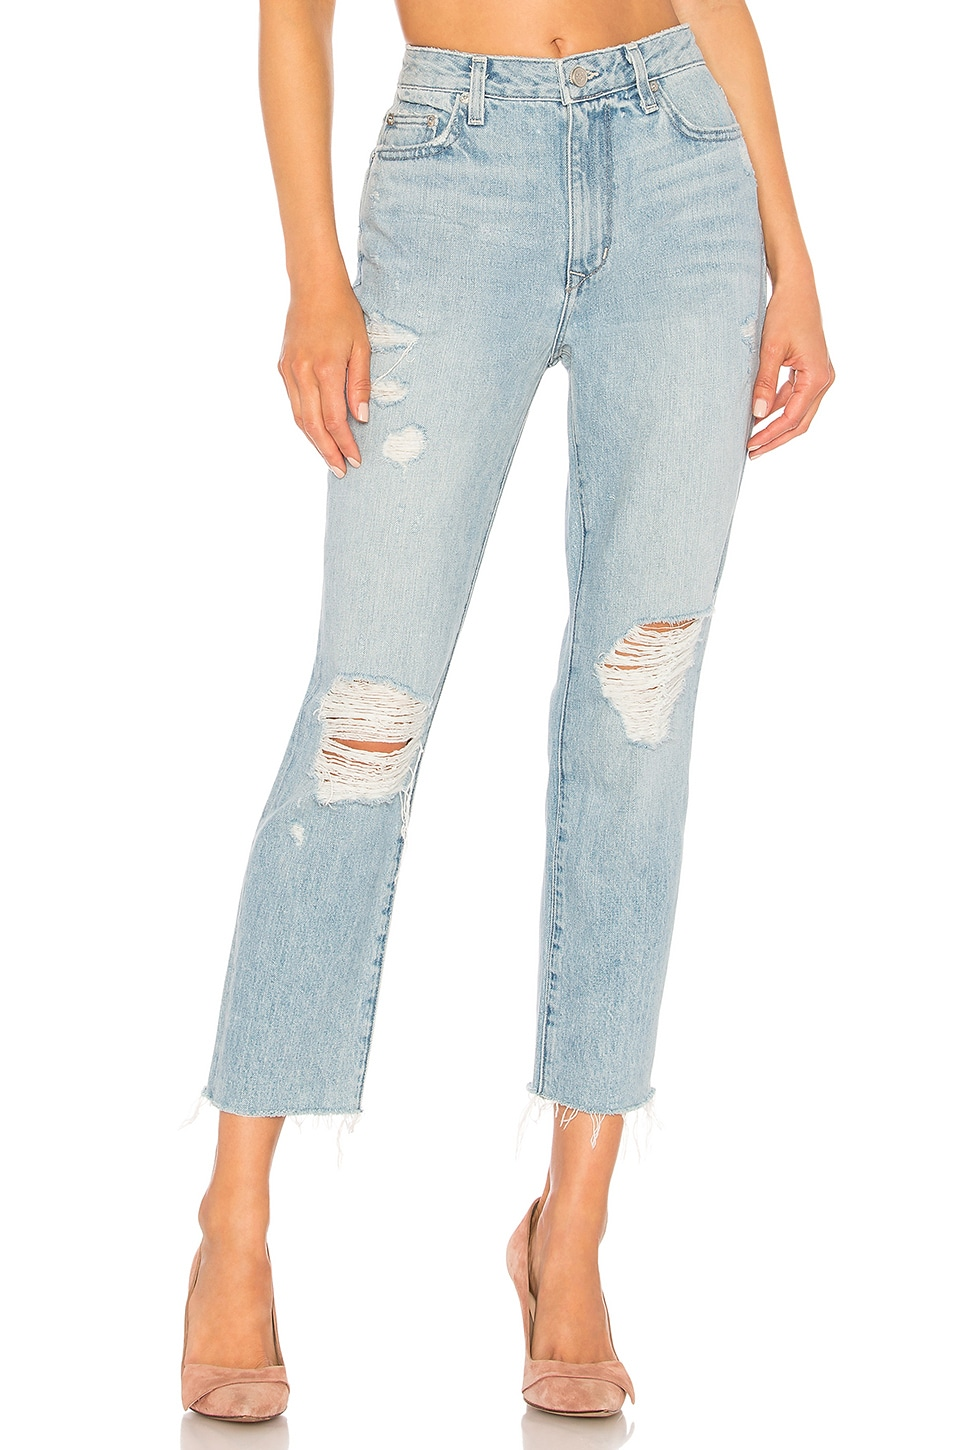 Lovers + Friends Logan High Rise Tapered Jean in Edinger